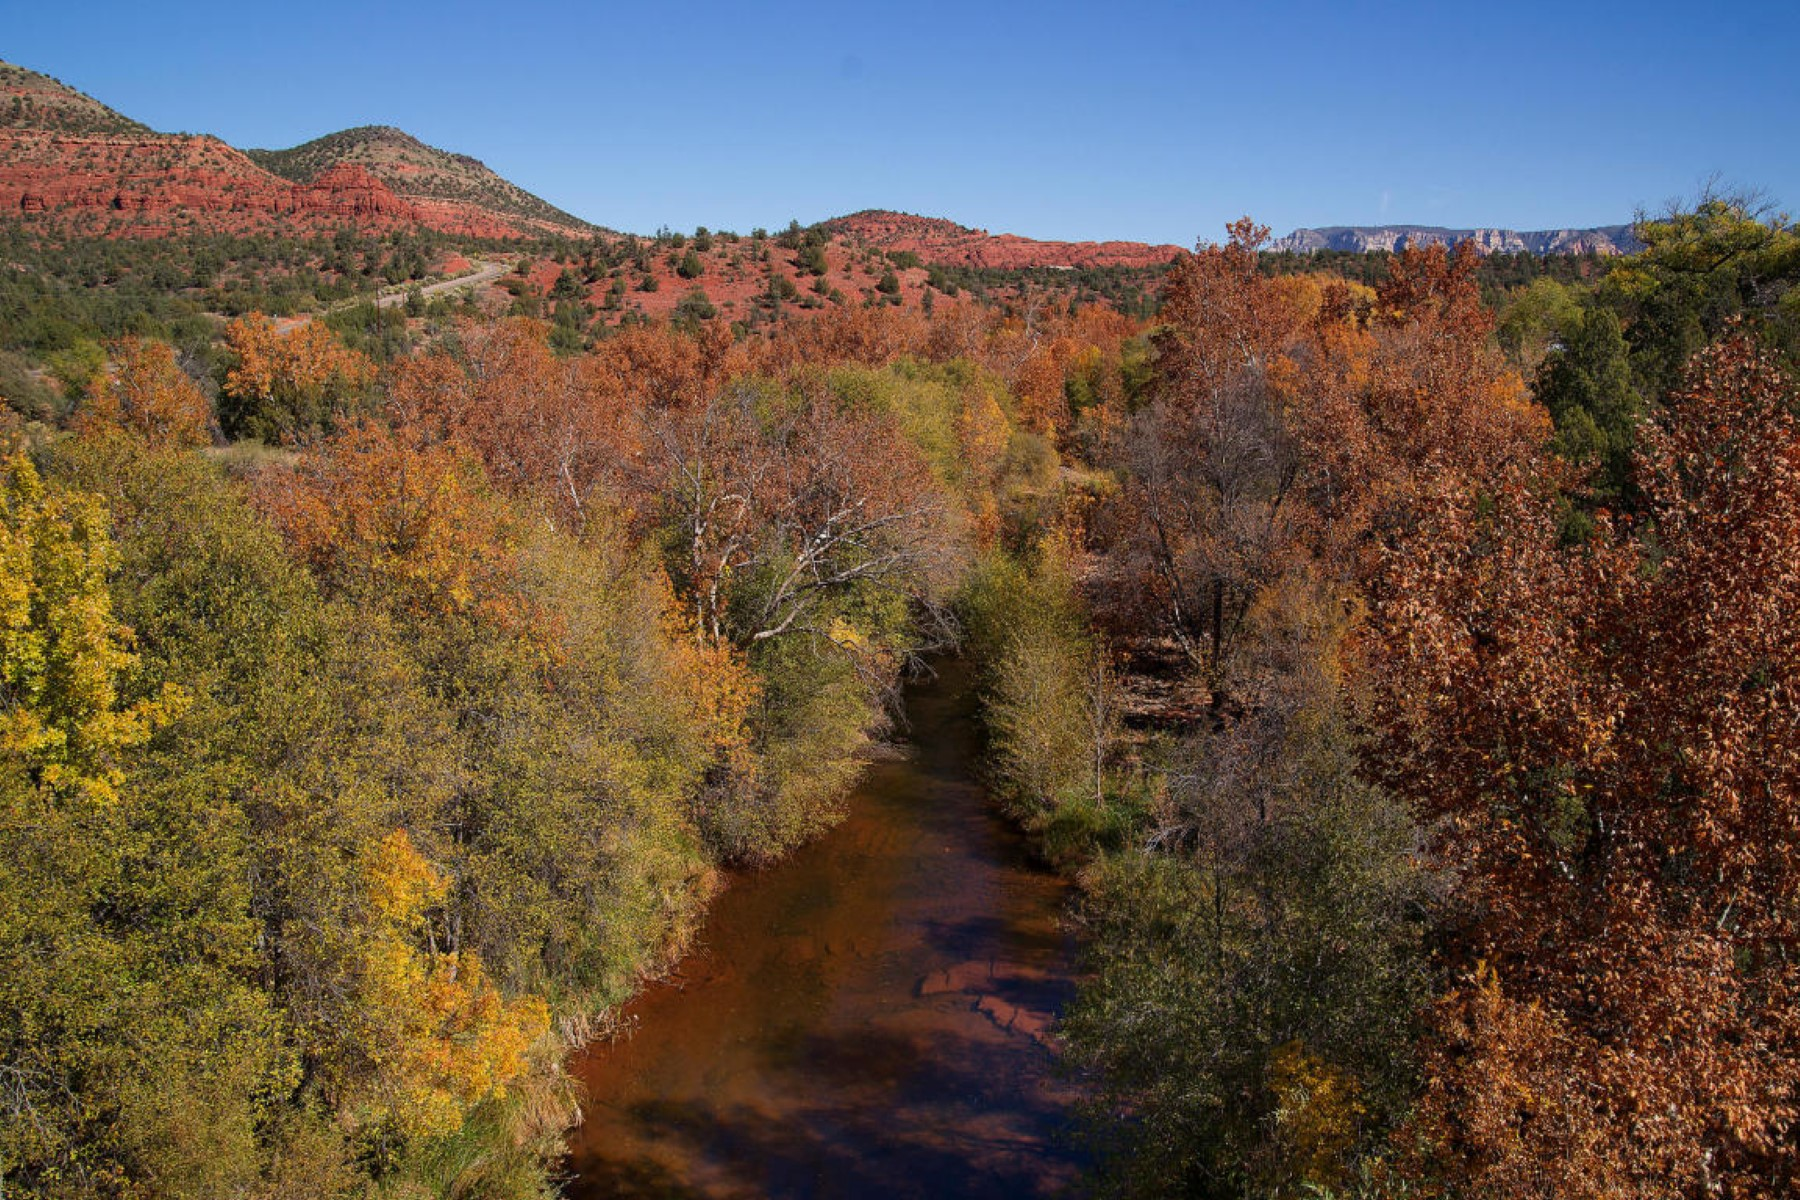 Land for Sale at Creek front property in AZ's high desert 365 Cross Creek Circle Sedona, Arizona, 86336 United States